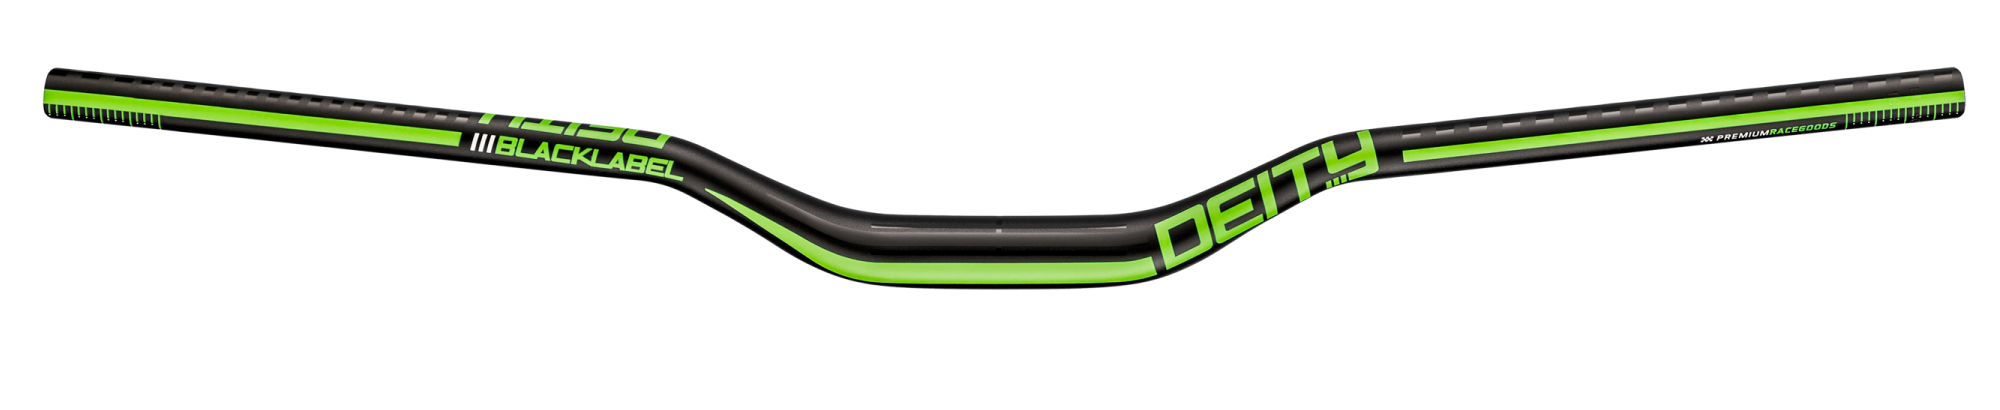 DEITY BLACKLABEL 800 HANDLEBAR GREEN